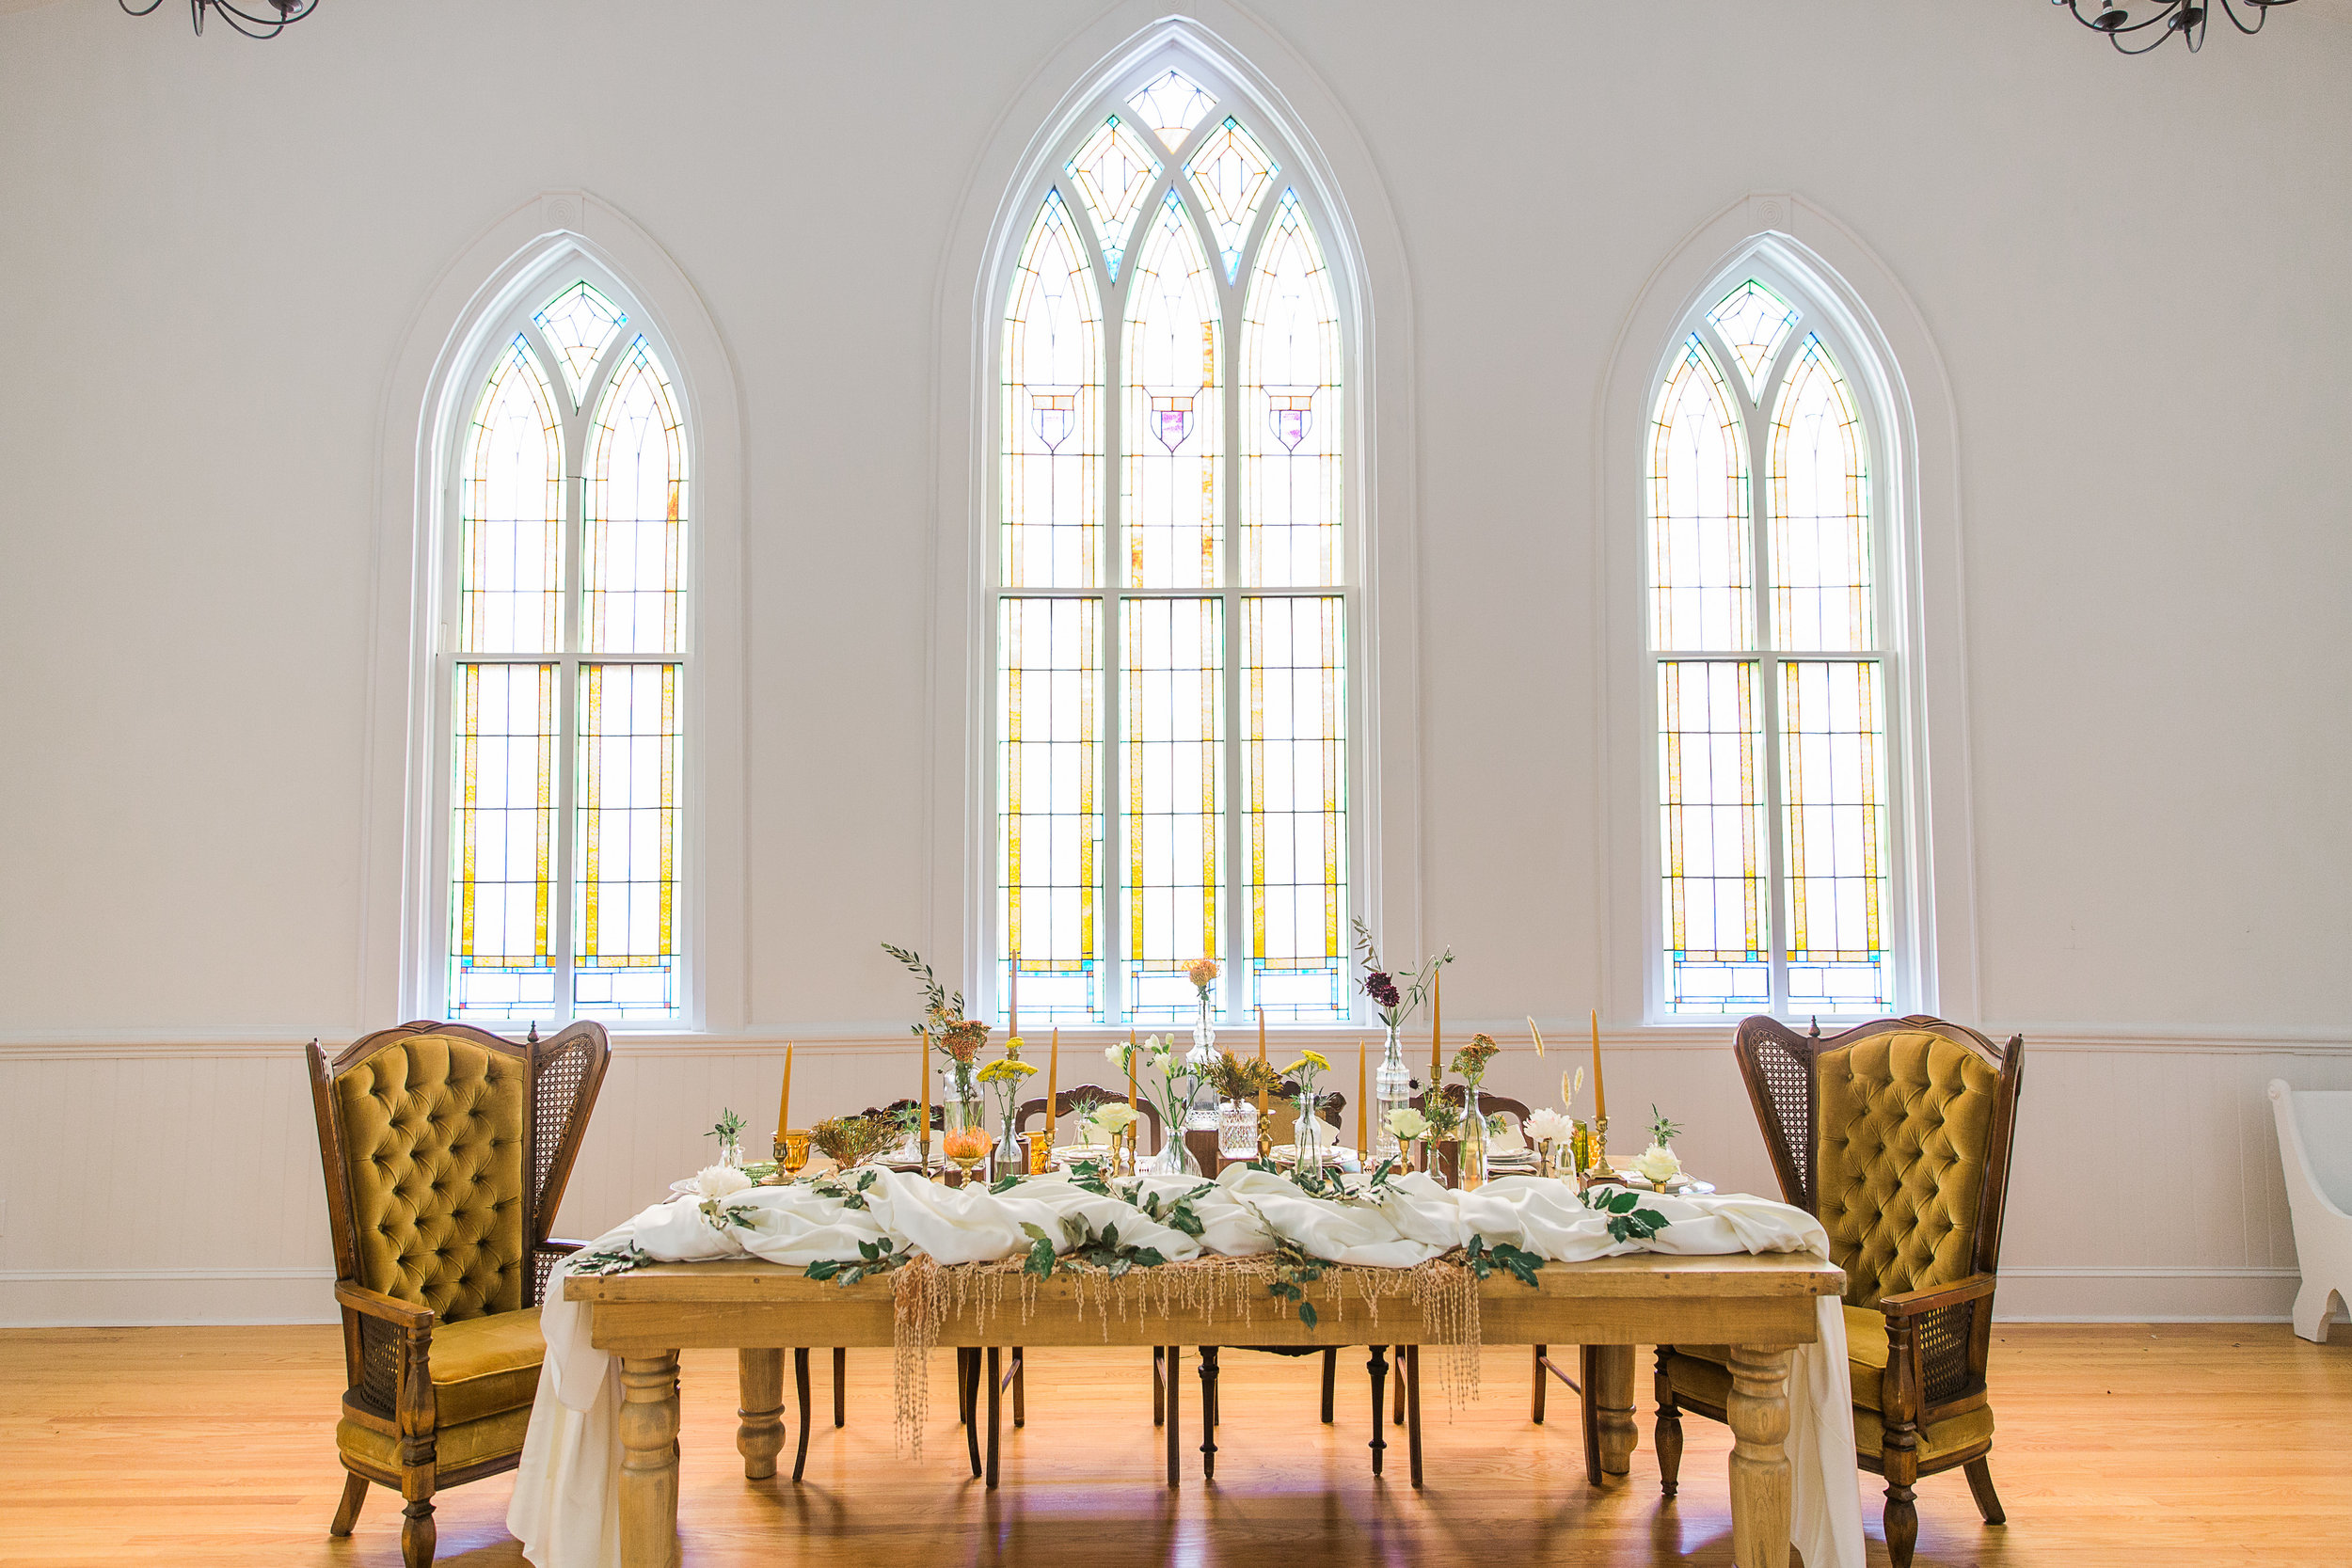 Wedding Head Table Decor Inspiration at The Trinity Chapel